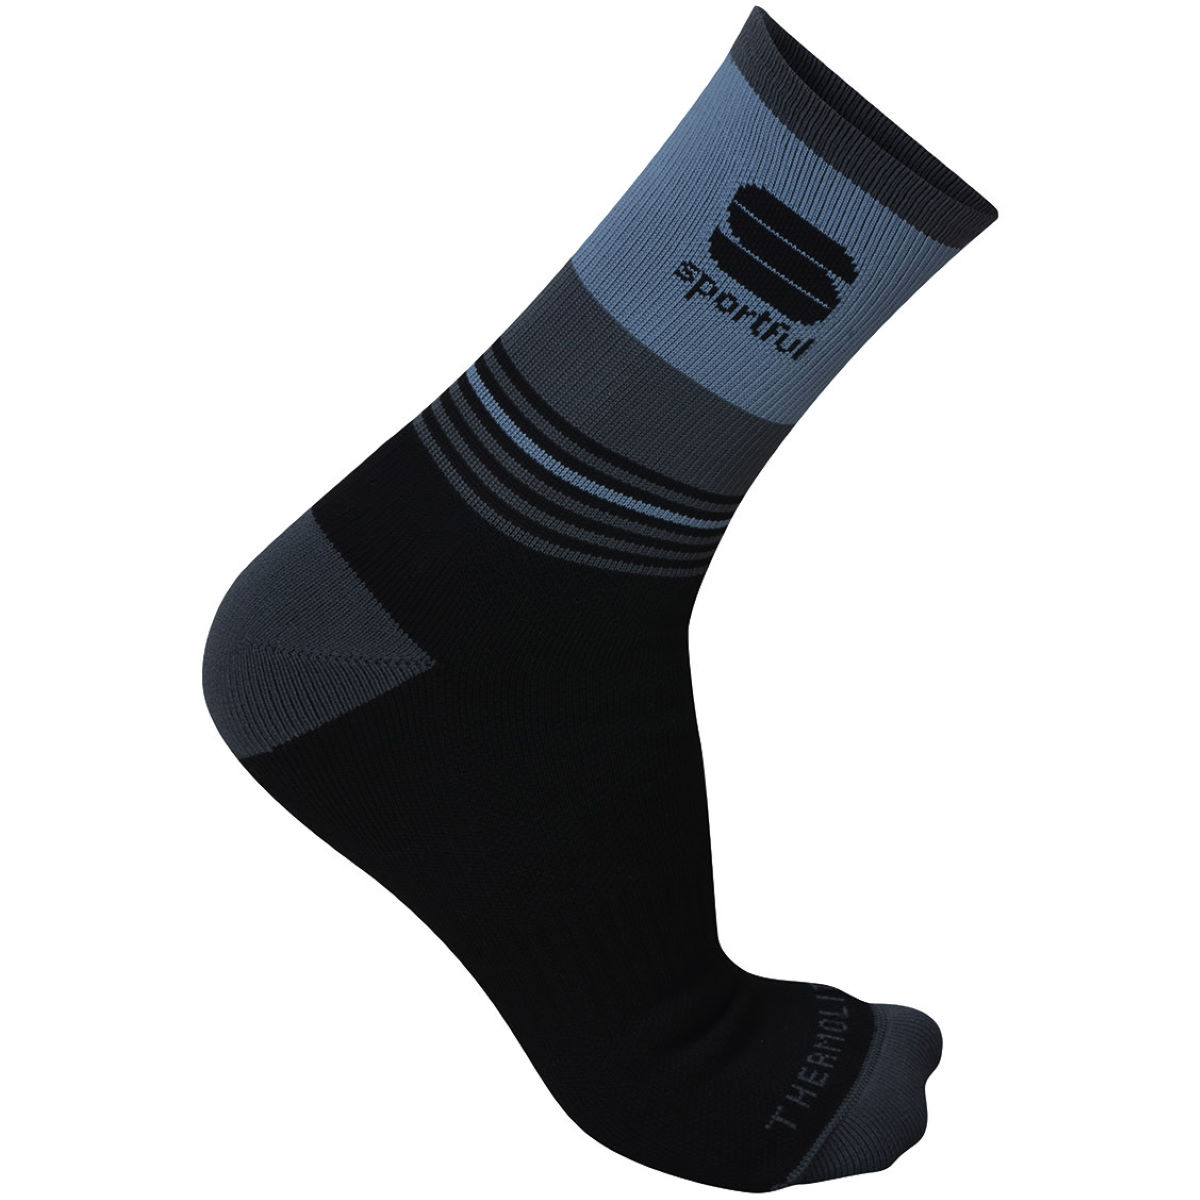 Image of Chaussettes Sportful Arctic 13 - S Black/Anthracite | Chaussettes